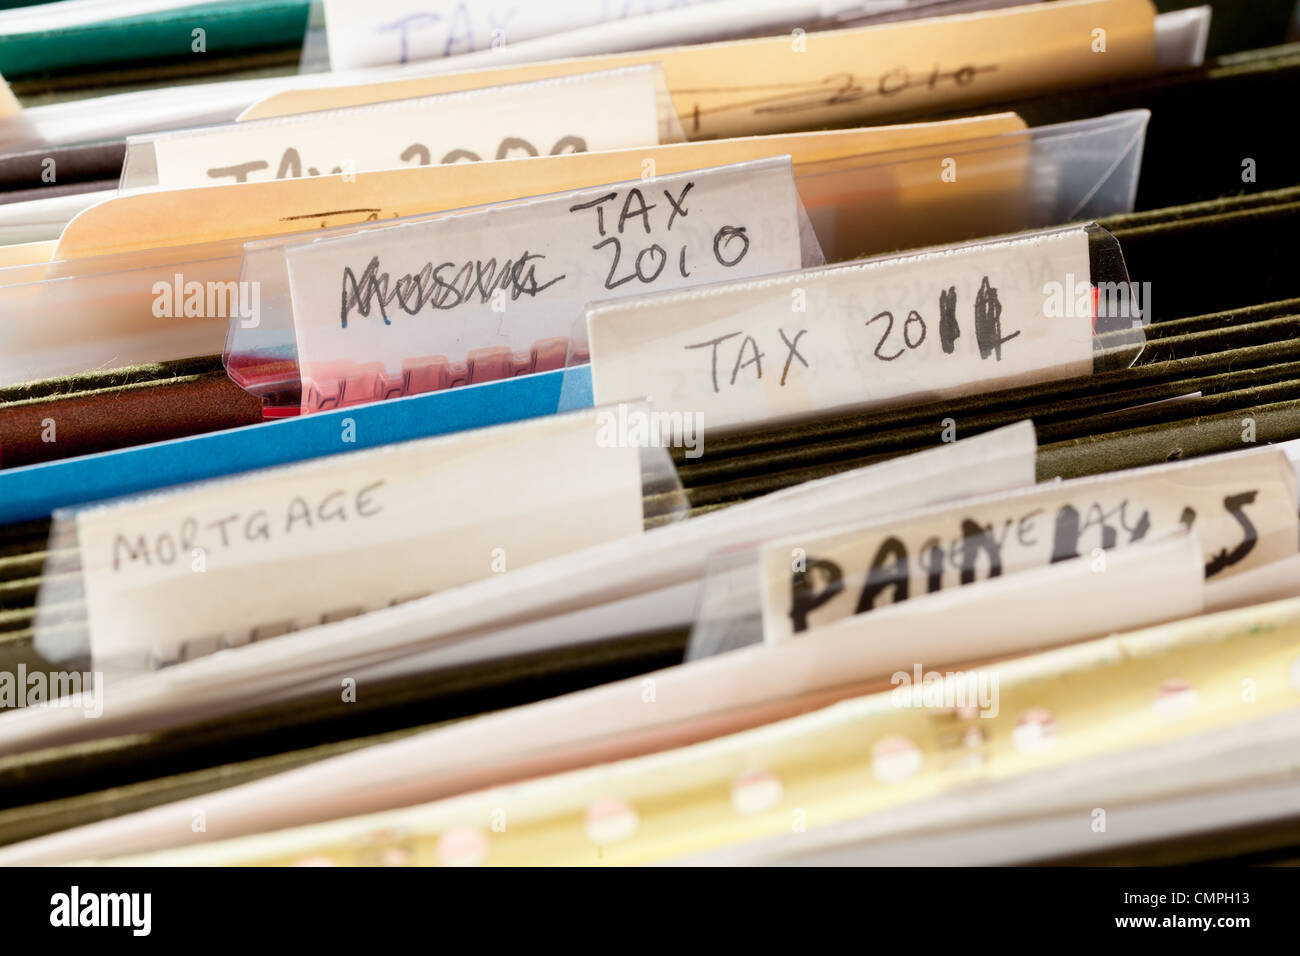 Paperwork folders in file drawer sorted into tax years and mortgage documents - Stock Image